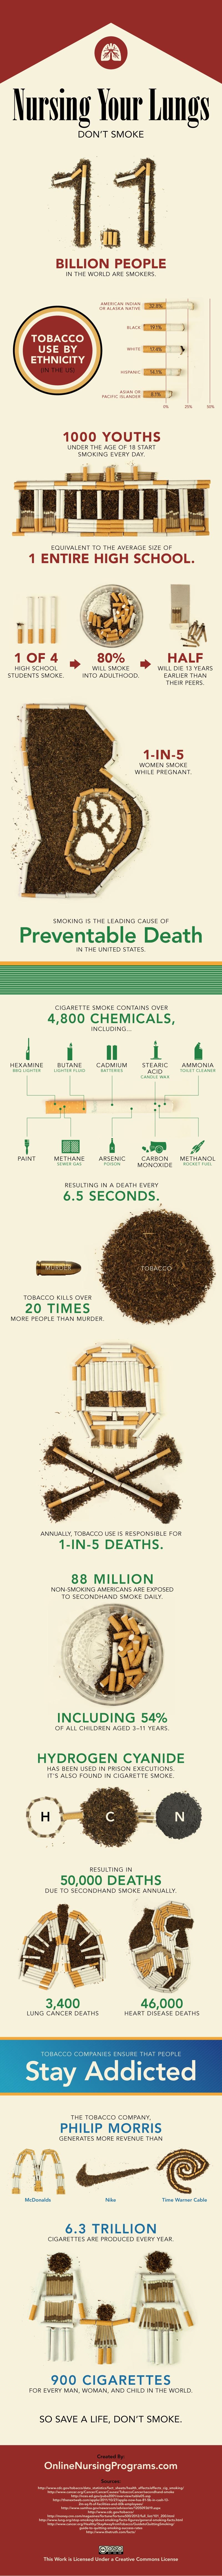 Quit Smoking: Infographic About Smoking In The US